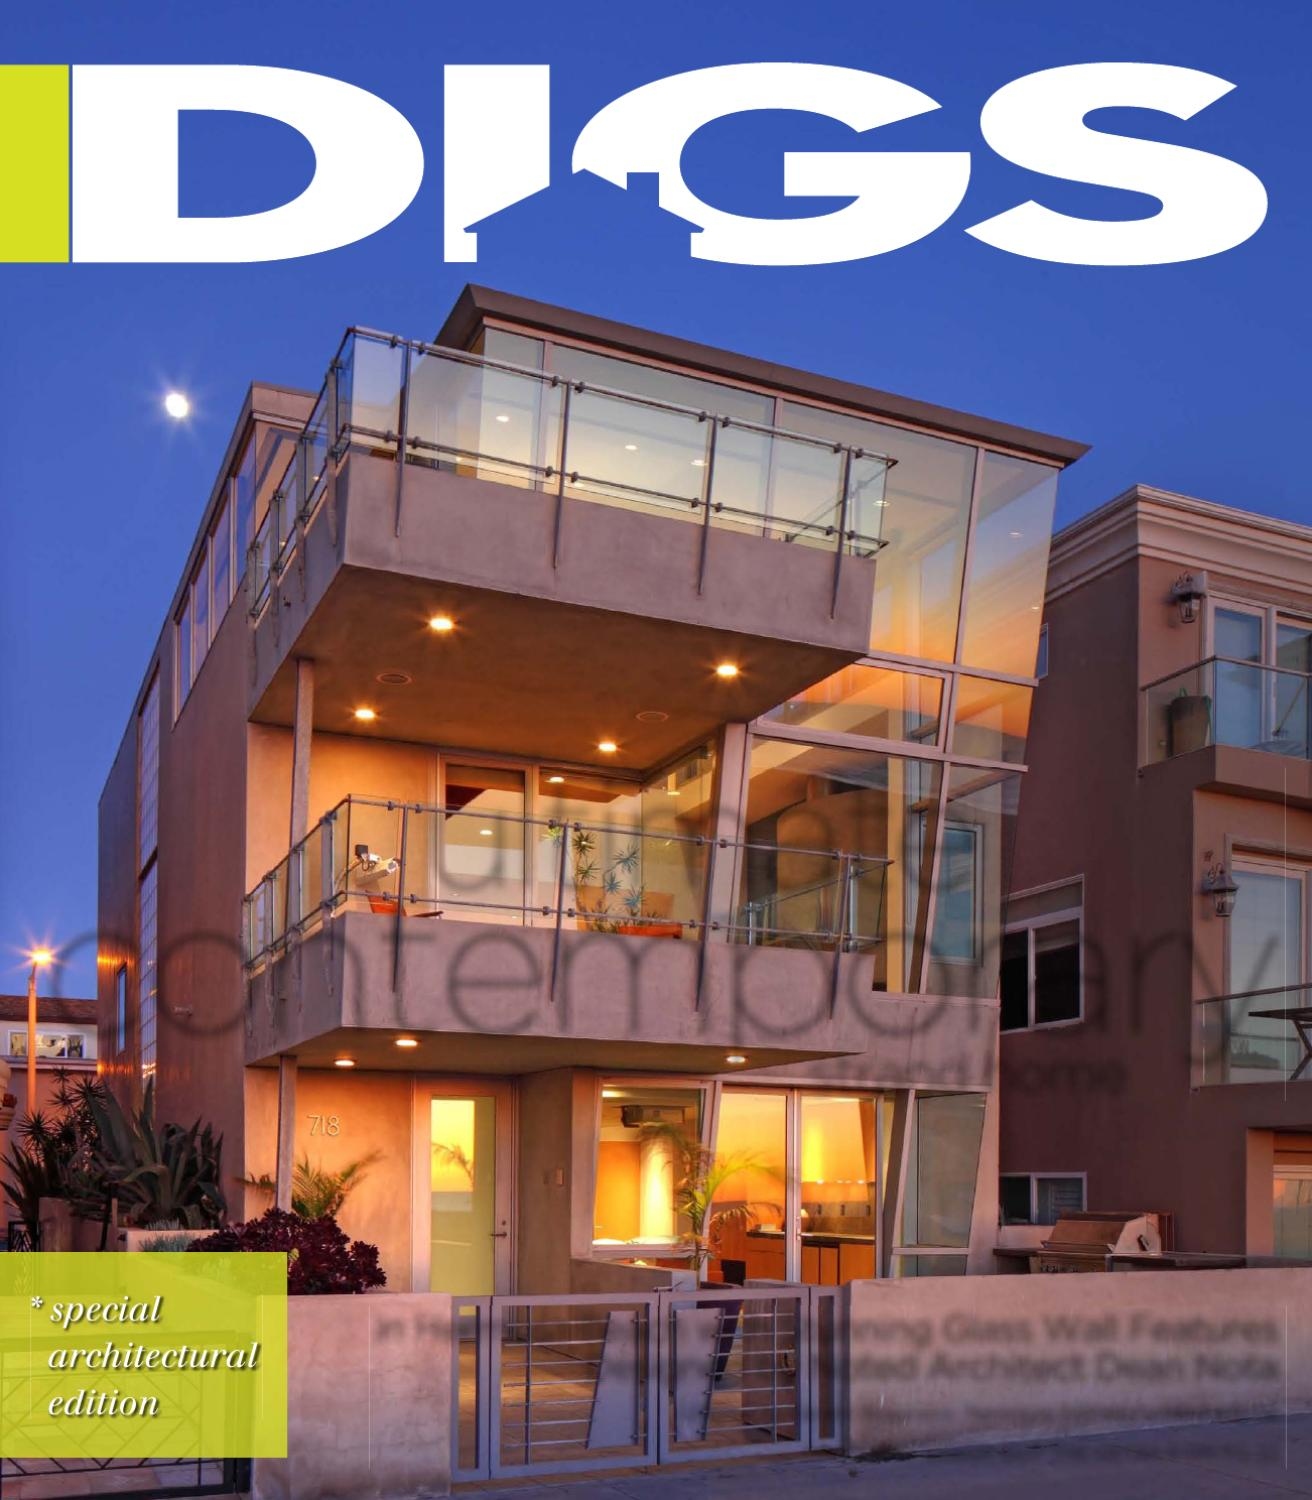 South Bay Digs 12.16.11 By M3 Media   Issuu